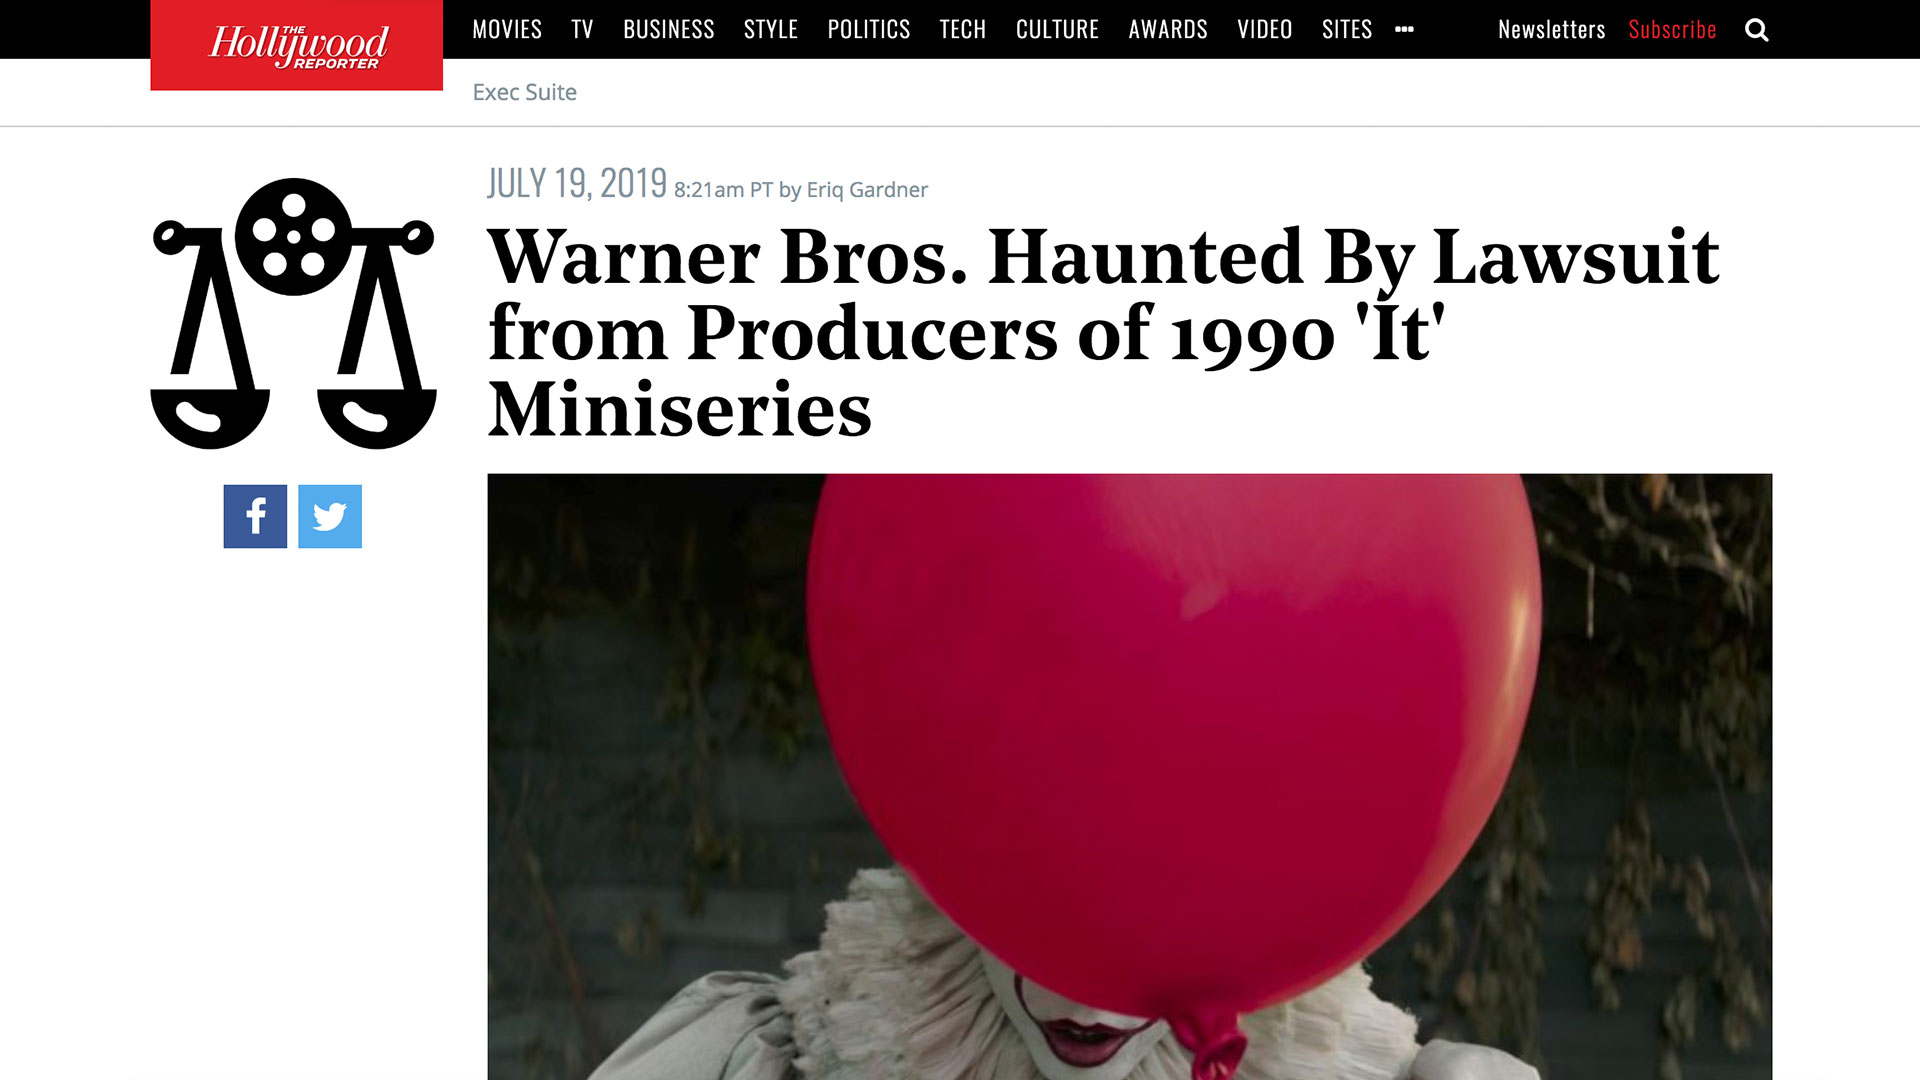 Fairness Rocks News Warner Bros. Haunted By Lawsuit from Producers of 1990 'It' Miniseries